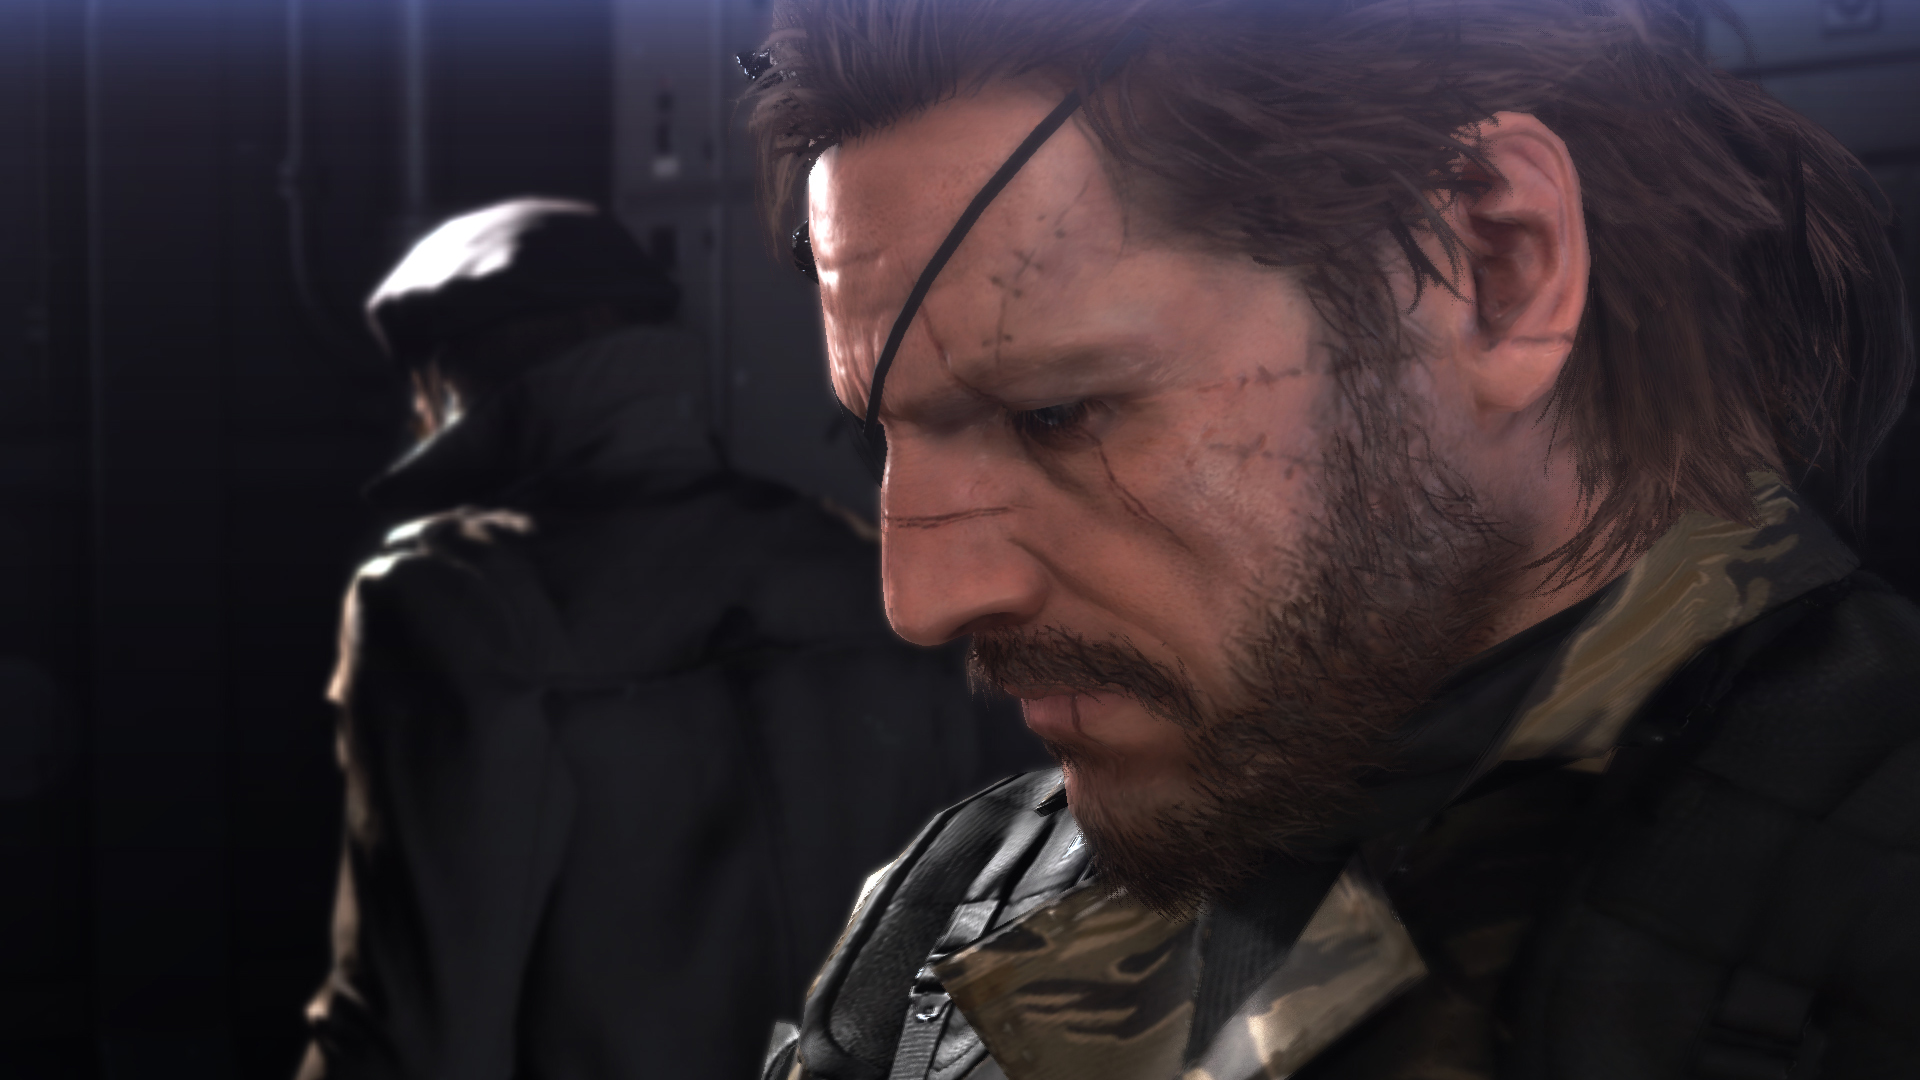 http://www.theaveragegamer.com/wp-content/uploads/2014/03/Metal-Gear-Solid-V-Snake-Big-Boss.jpg